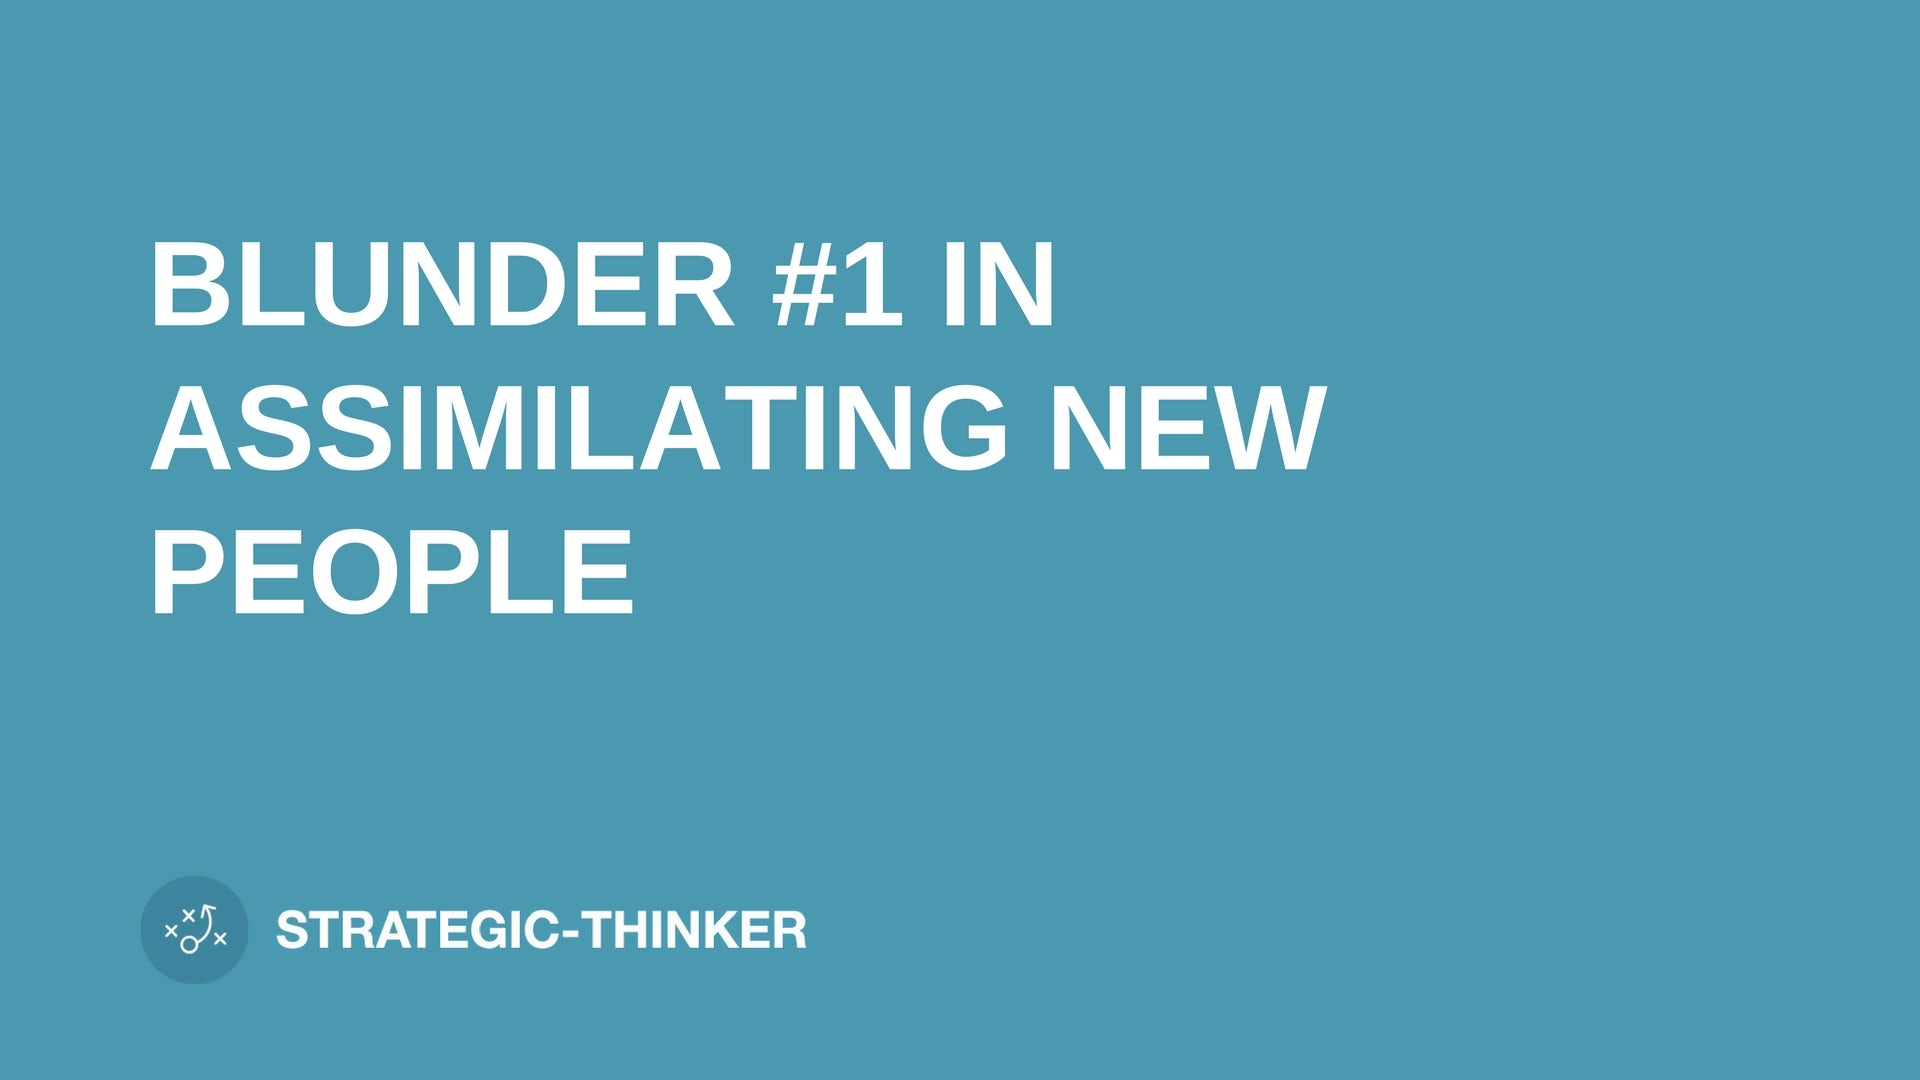 "text ""BLUNDER #1 IN ASSIMILATING NEW PEOPLE"" on blue background leaders.church"